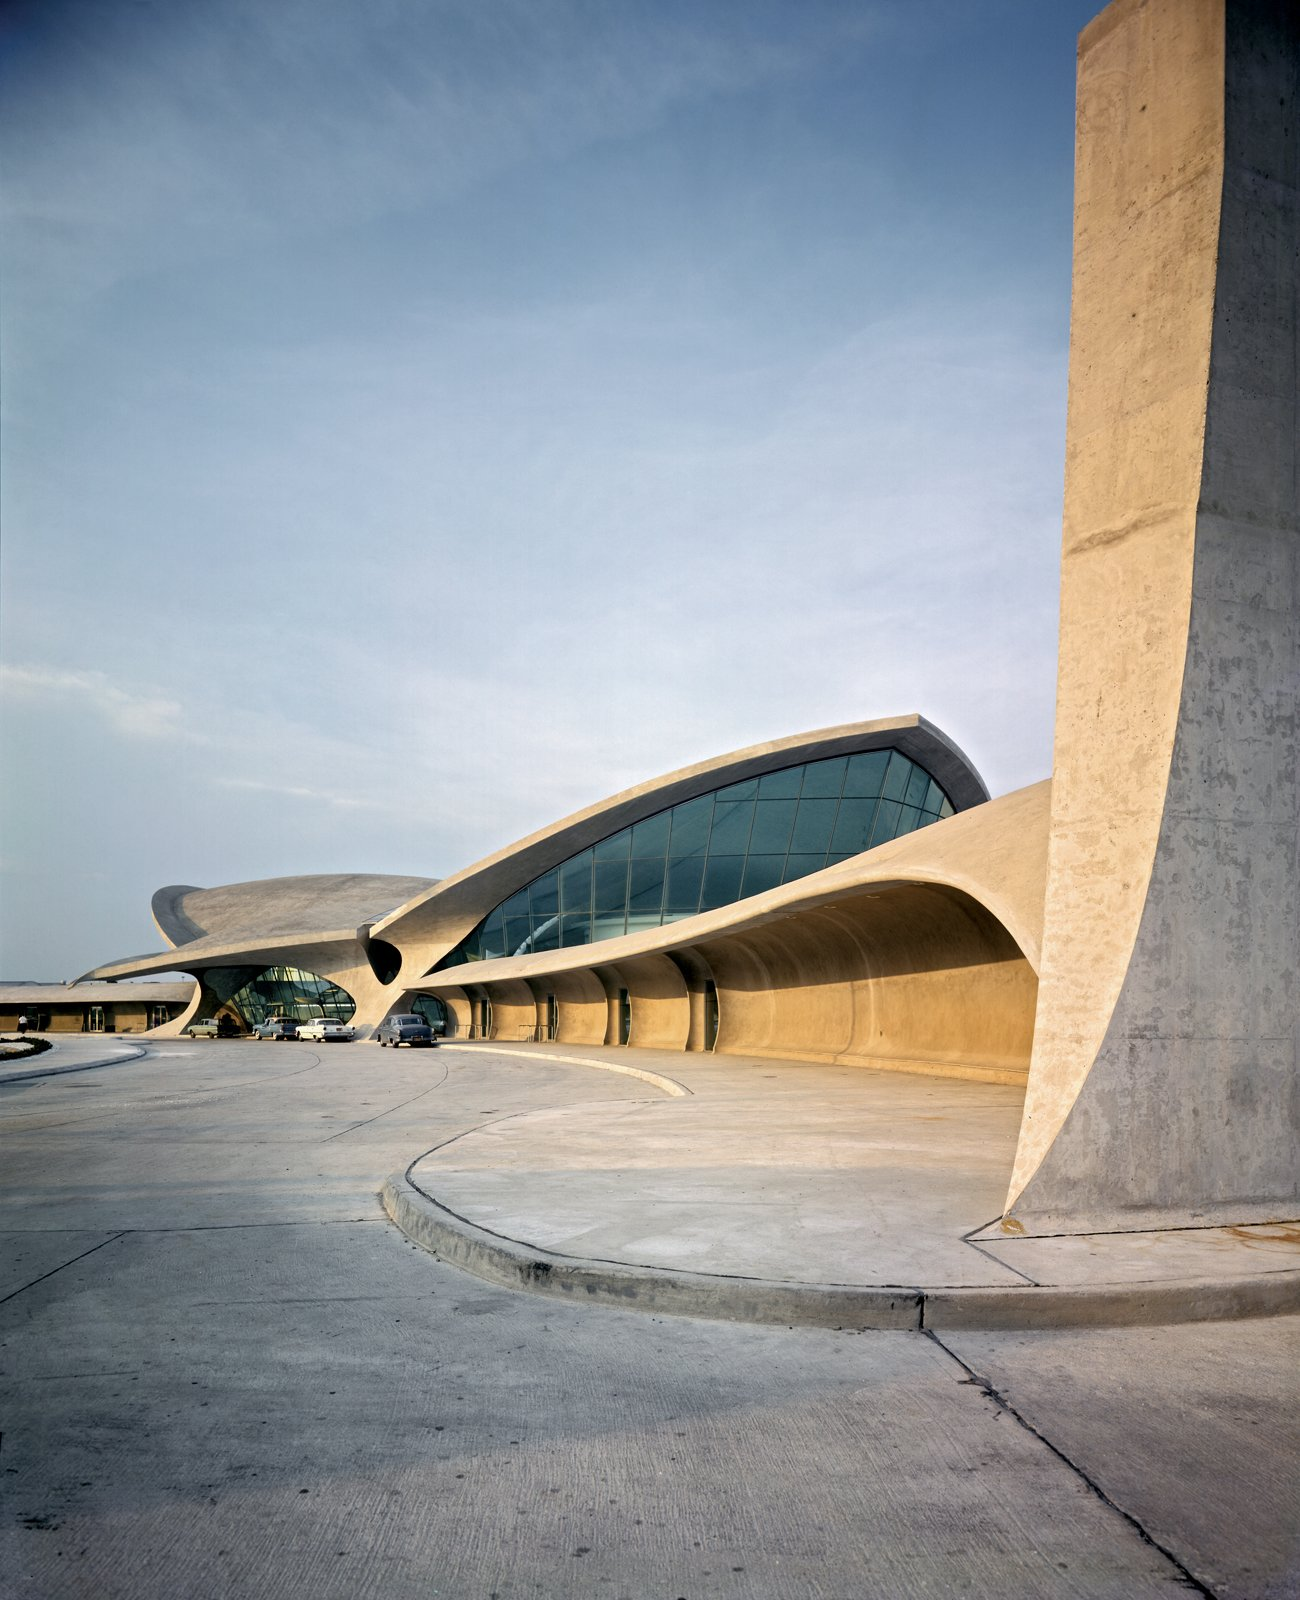 TWA Terminal, JFK Airport, New York CIty  Photo 2 of 5 in An Introduction to Airport Design